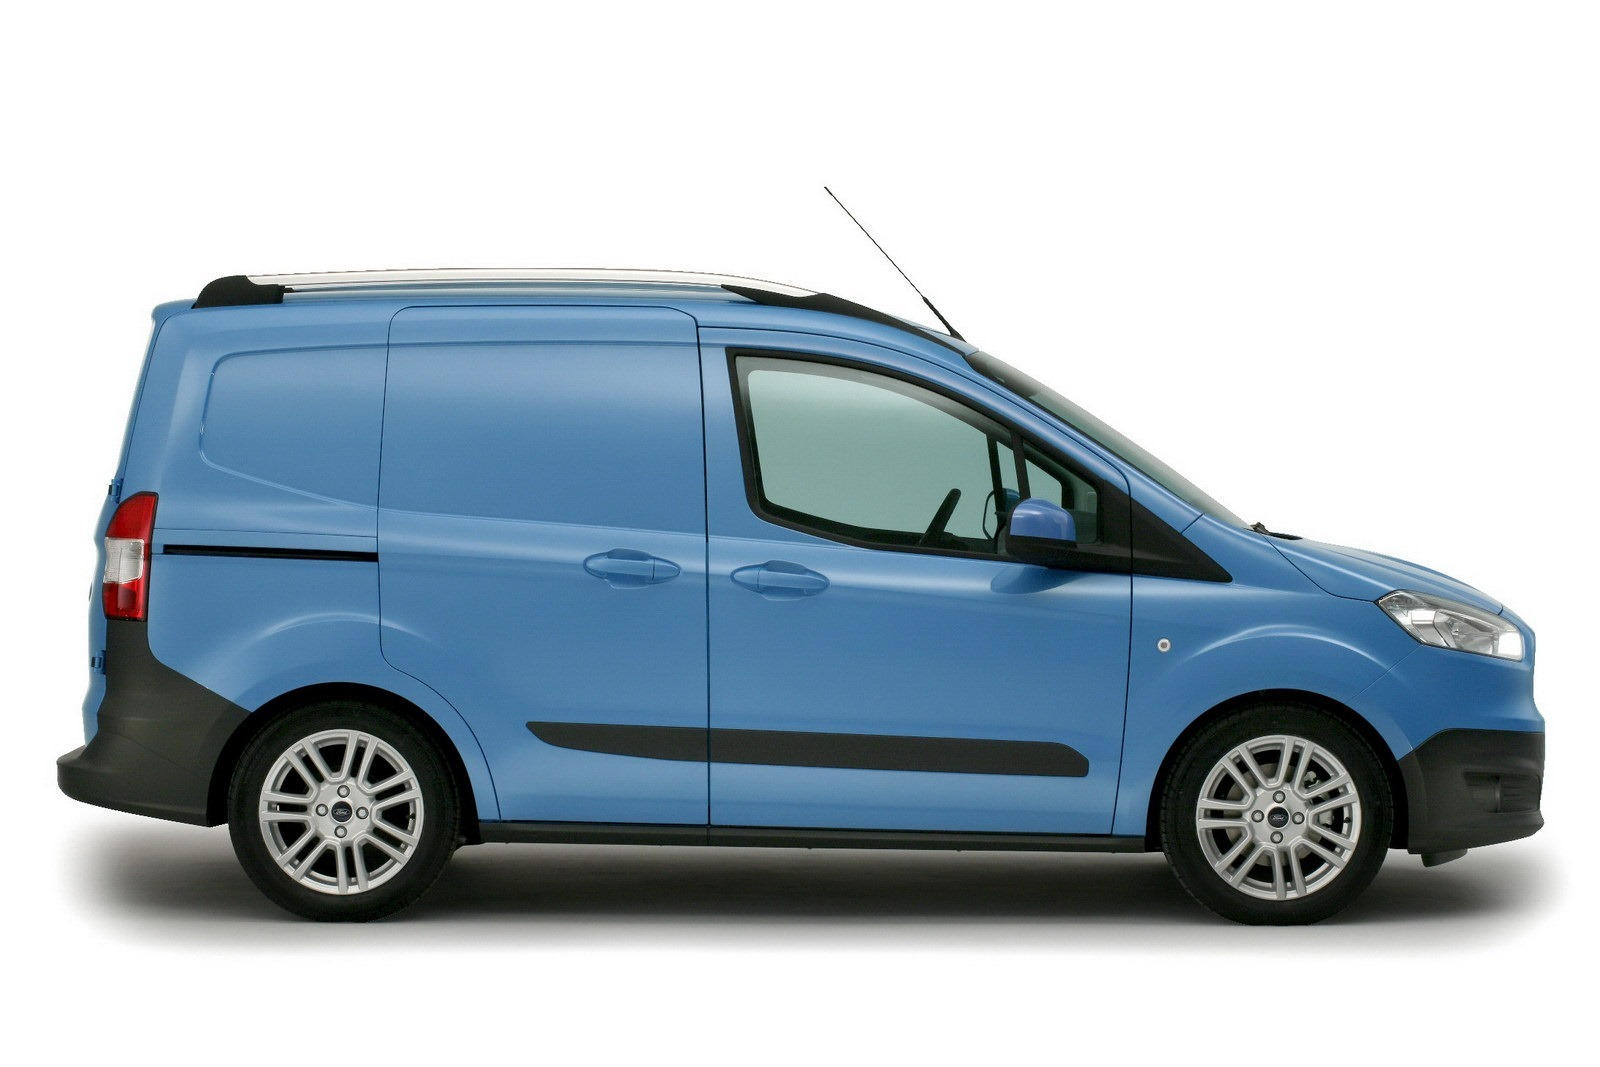 2014 ford transit courier birmingham cv fuar nda g r c ye. Black Bedroom Furniture Sets. Home Design Ideas